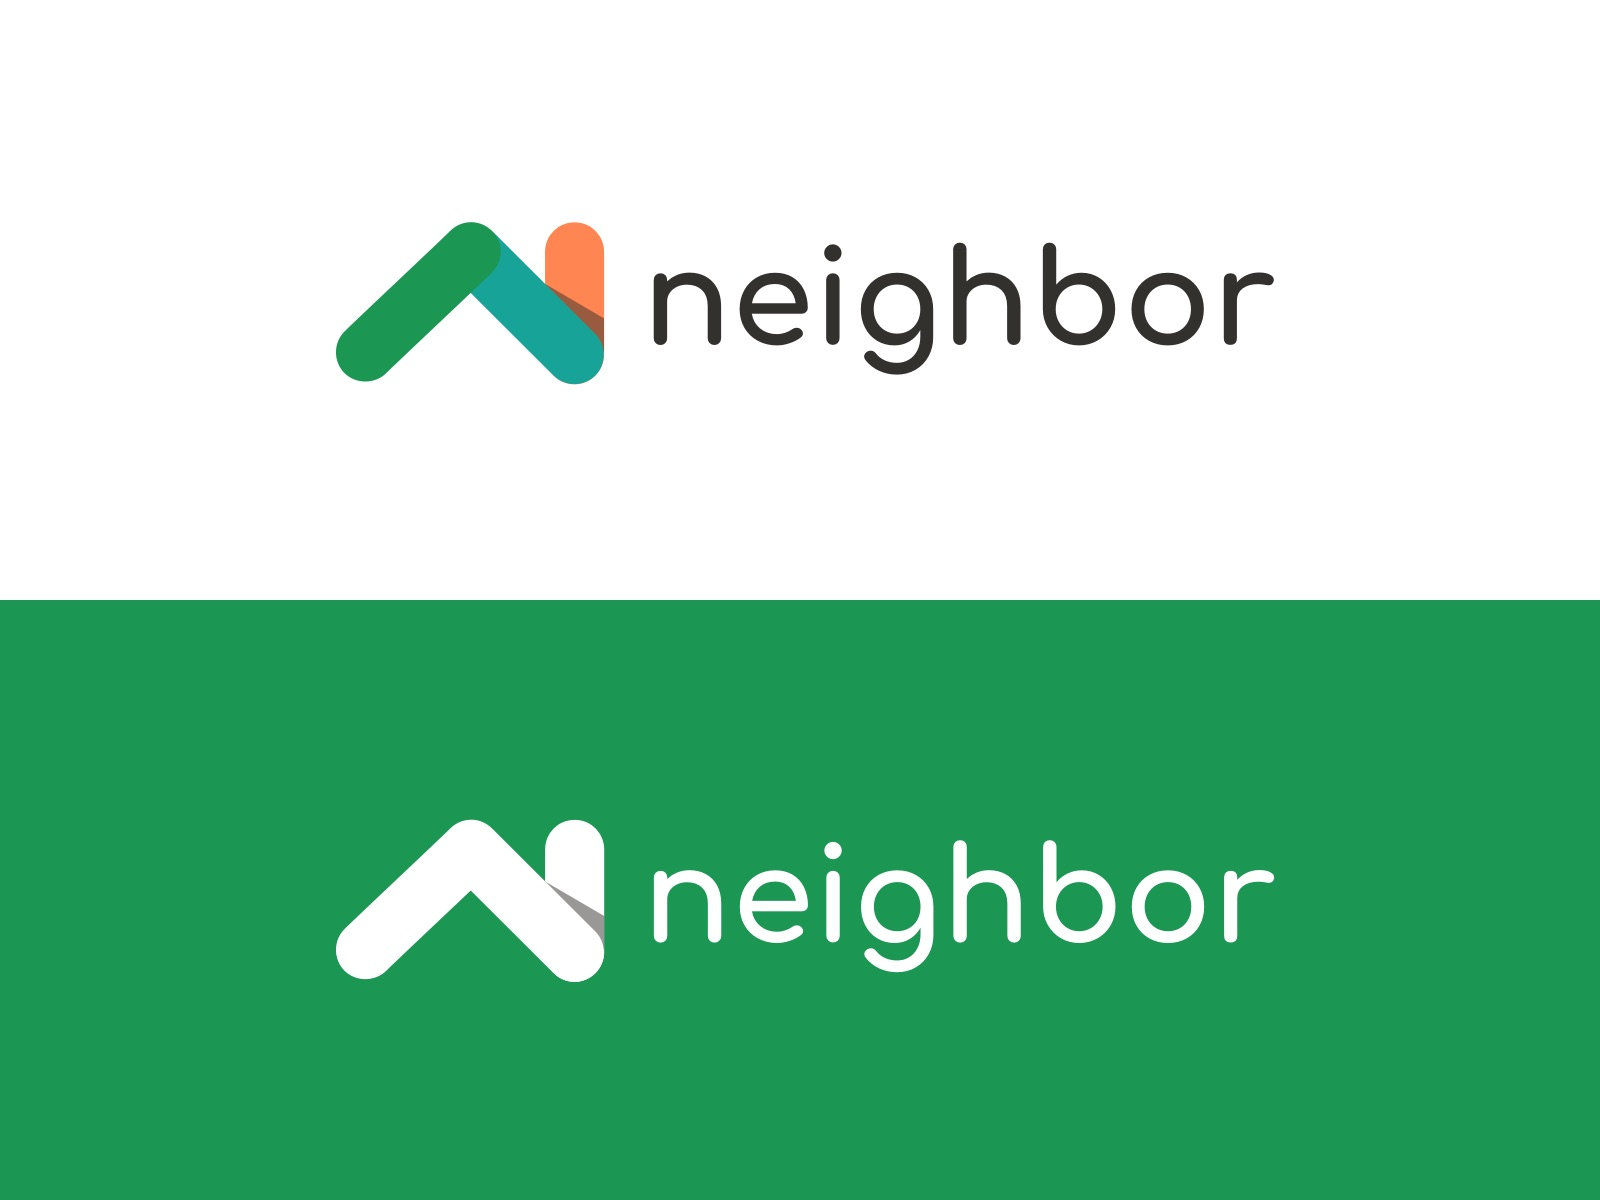 Neighbor logo